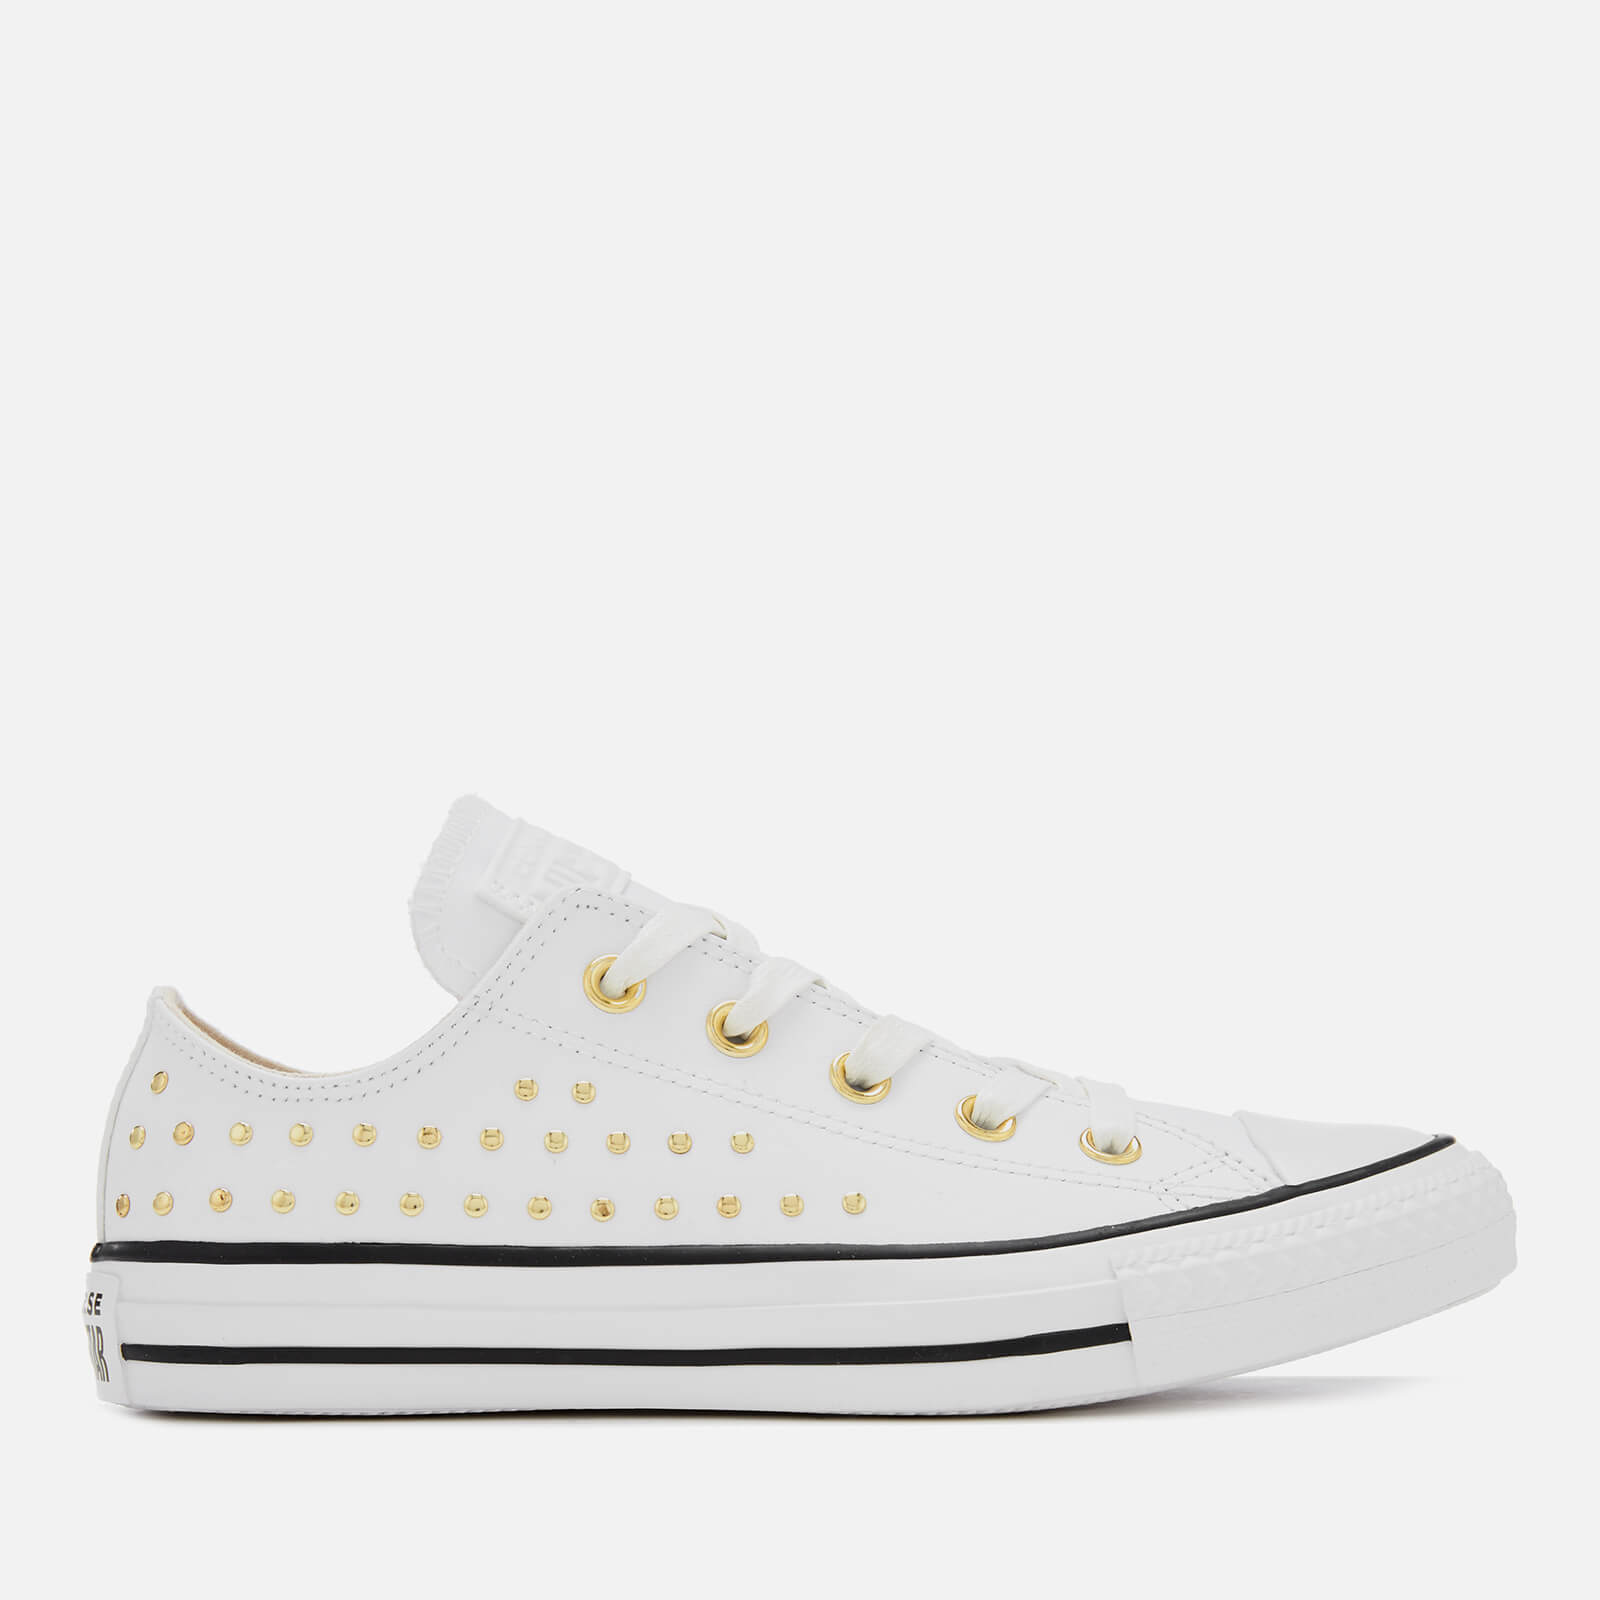 237151ead8df1a Converse Women s Chuck Taylor All Star Ox Trainers - White Gold ...